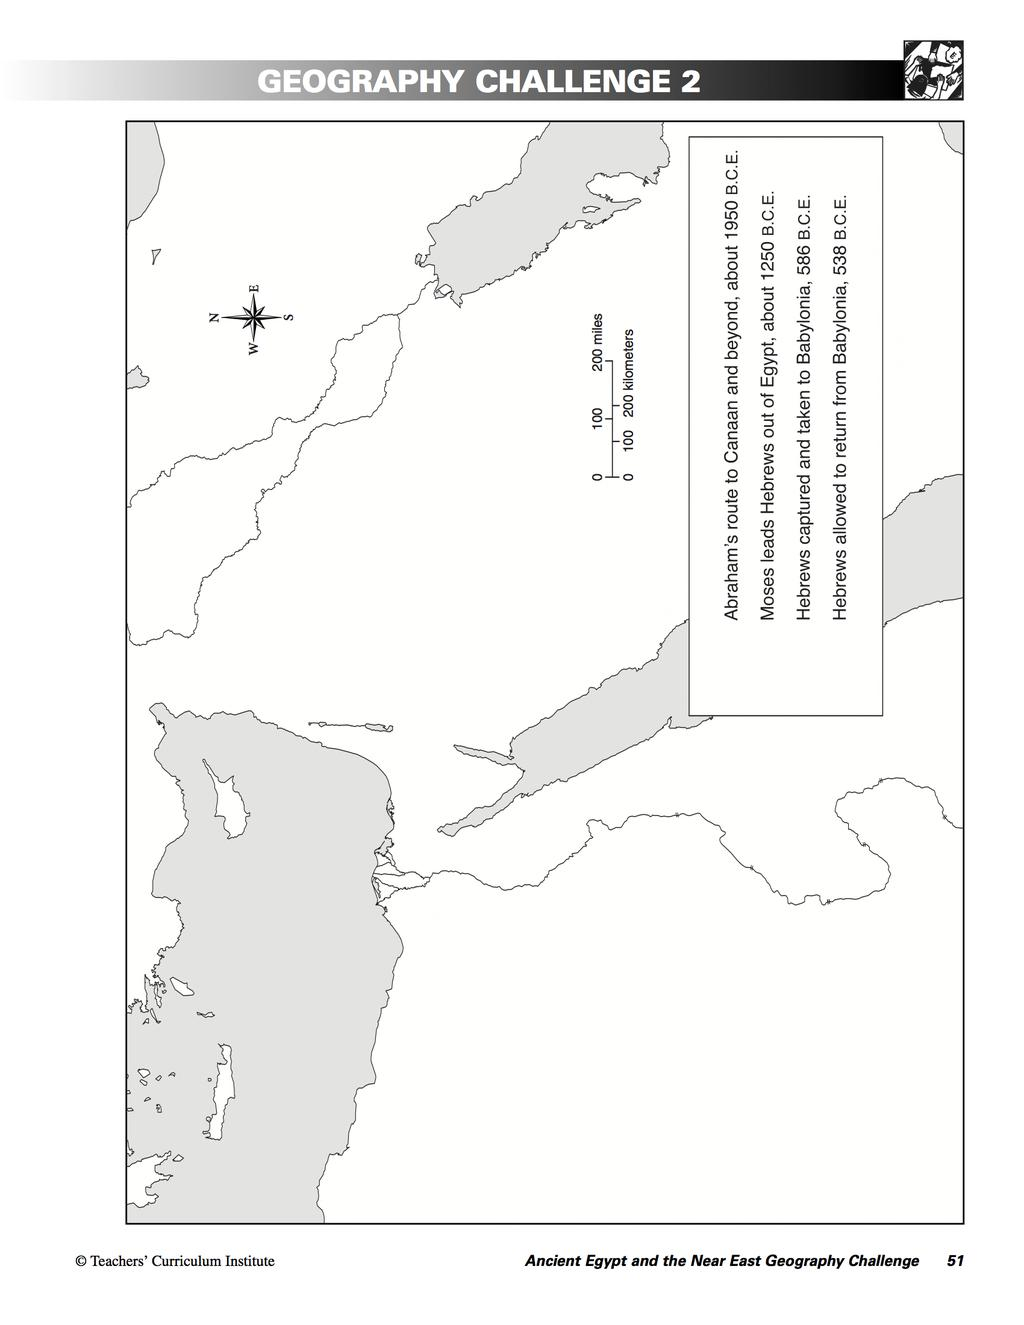 Sixth grade ancient history chapters ancient egypt pdf near the ancient kingdom of israel canaan draw this boundary on your map and lightly shade the inside of it blue then label this area on your map fandeluxe Images